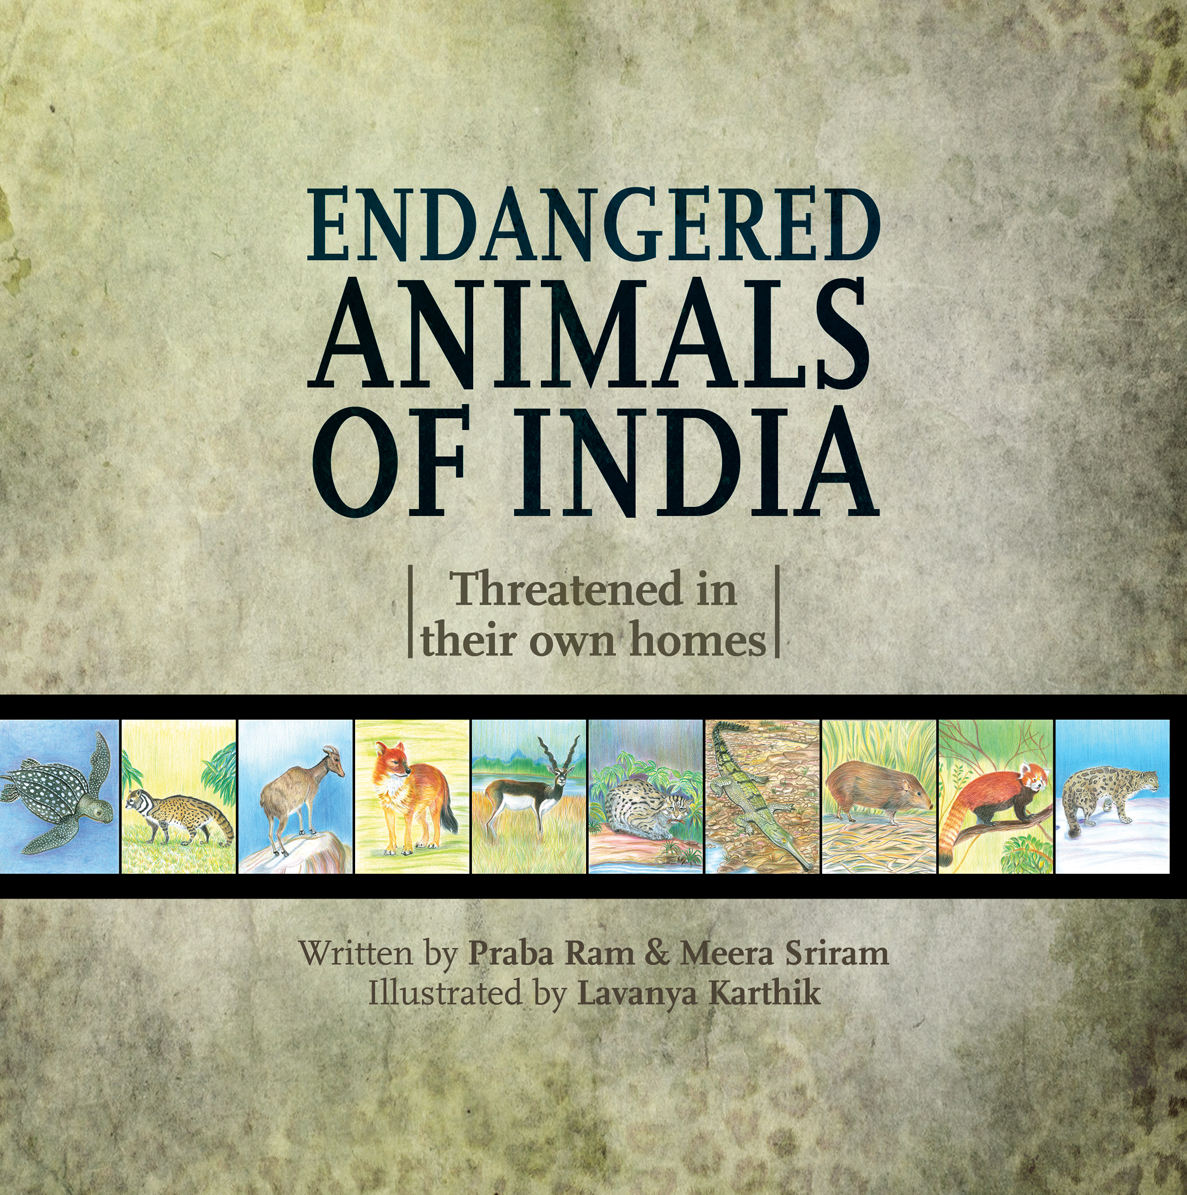 endangered-animals-of-india-praba-ram